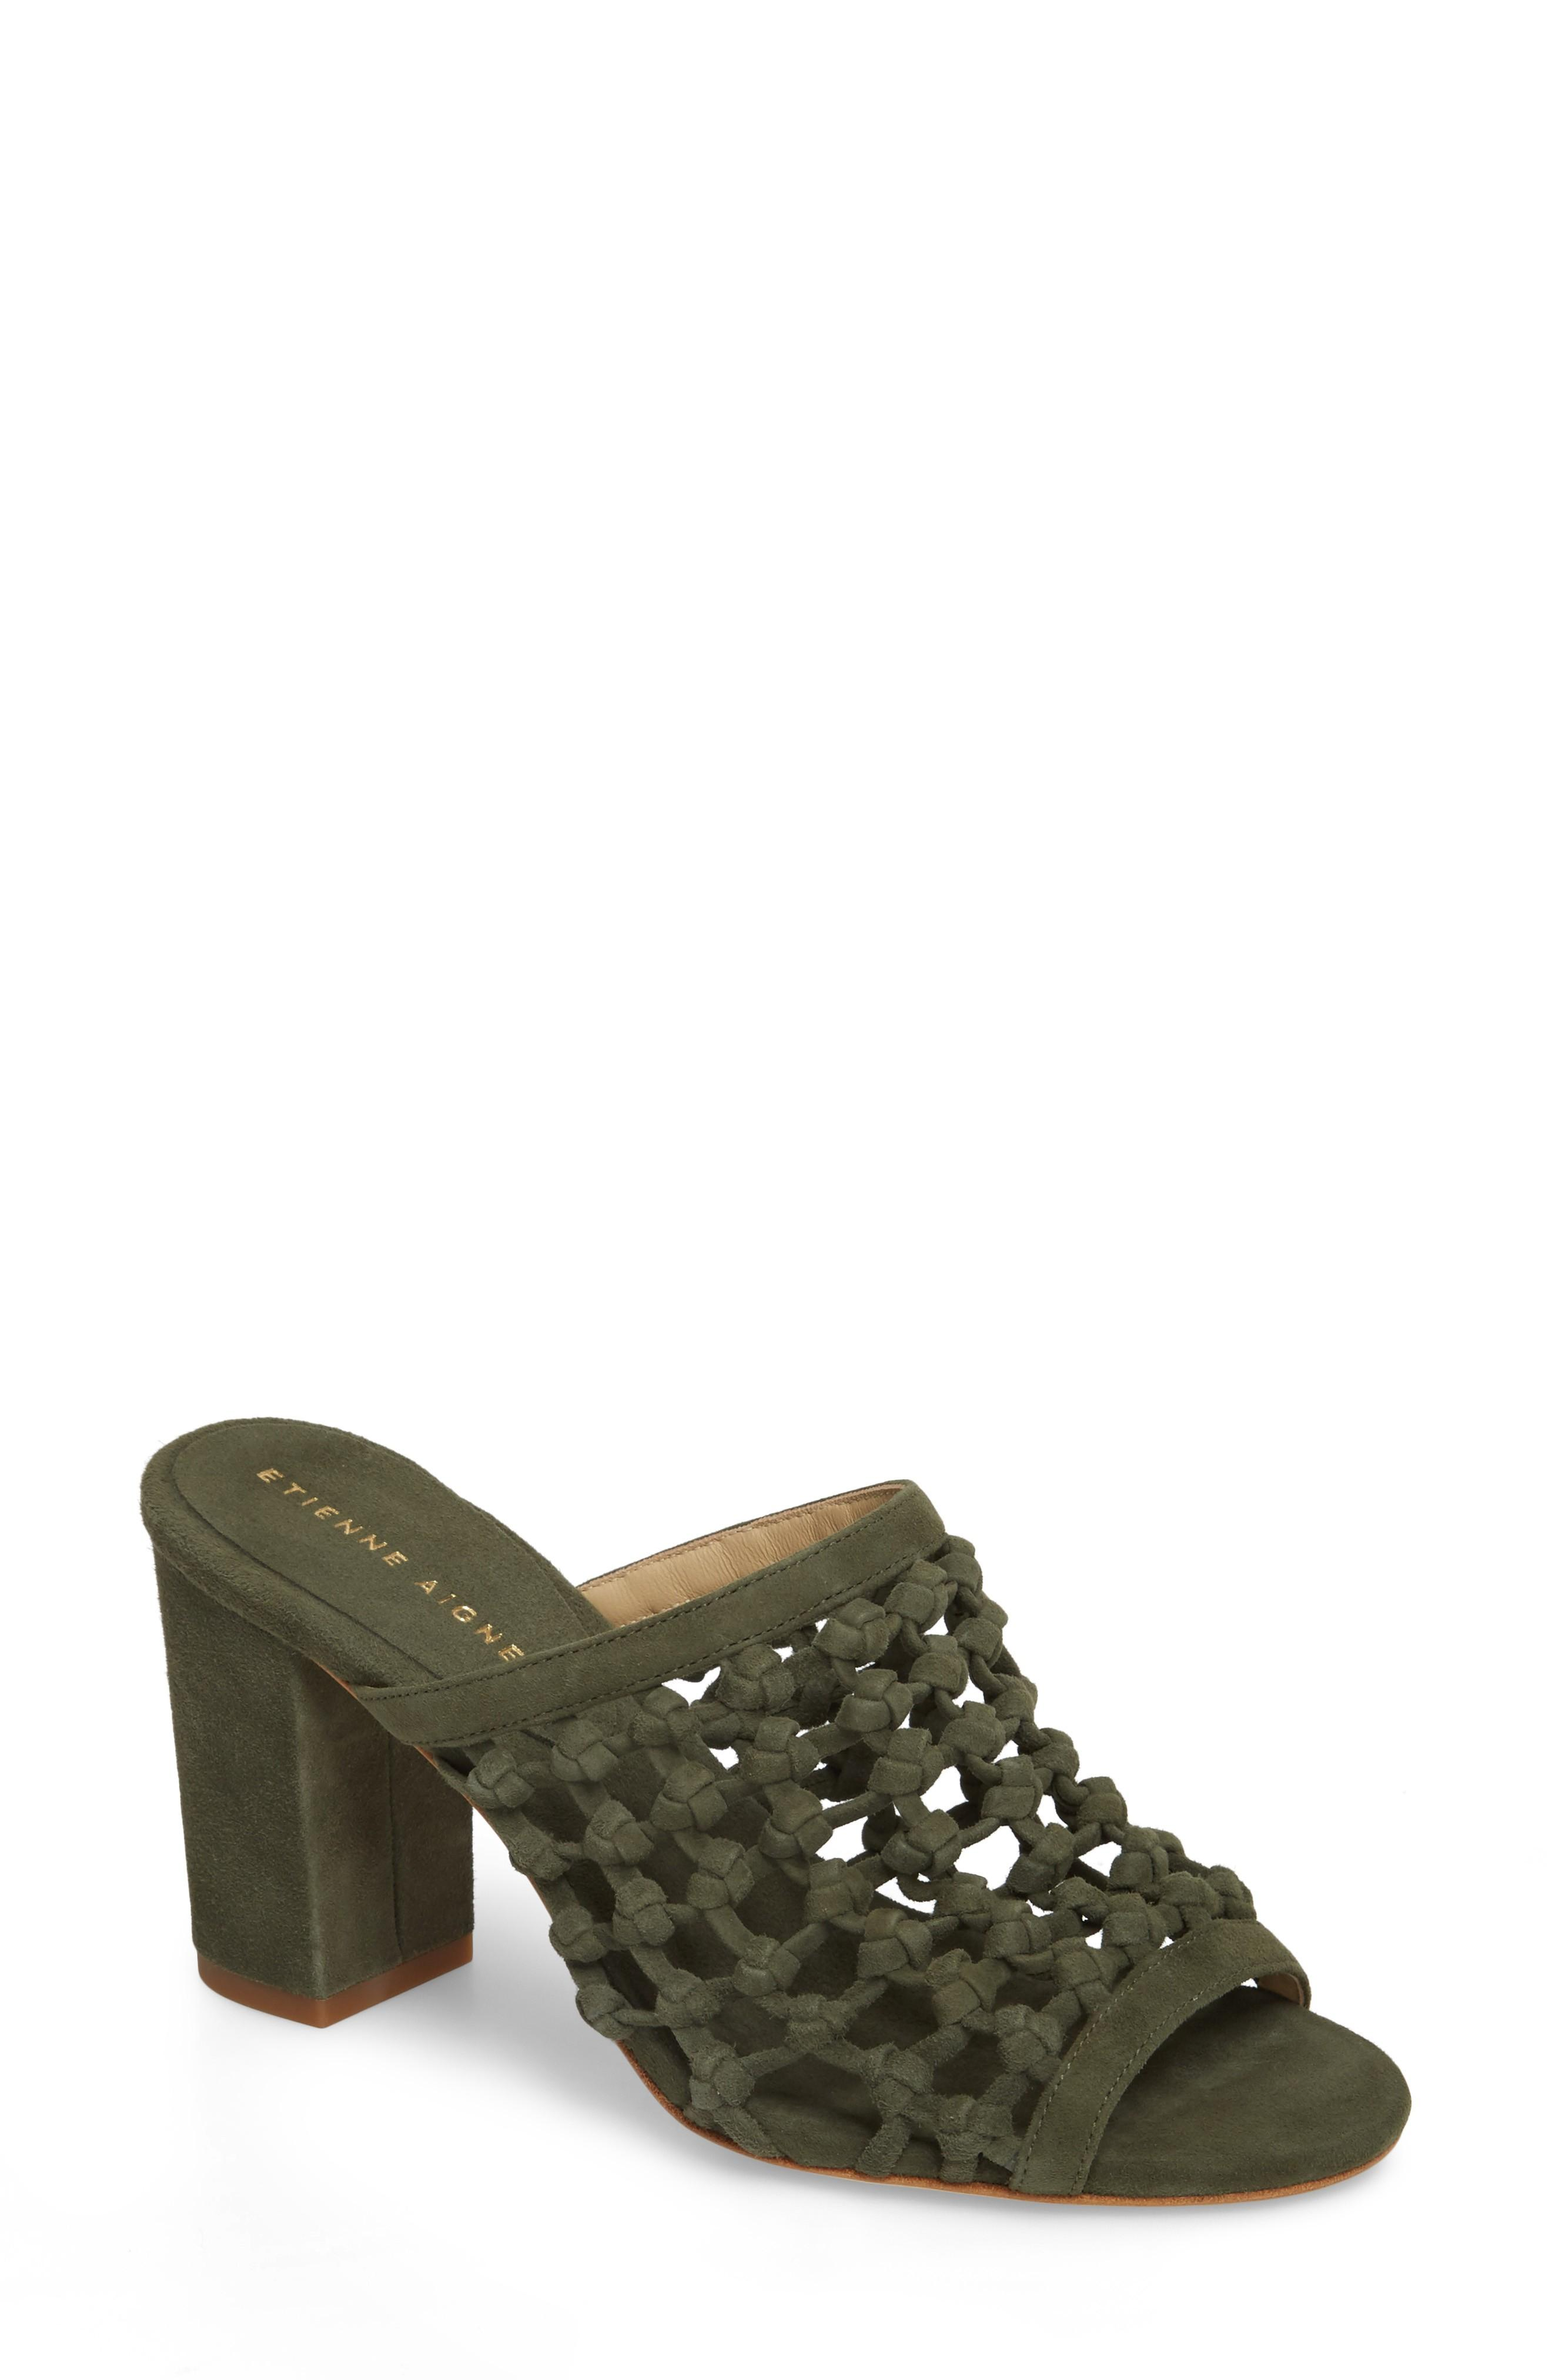 c5907c7e7d7 An intricate knotted lattice lends an extra touch of contemporary style to  a statement-making sandal grounded by a block heel. Style Name  Etienne  Aigner ...